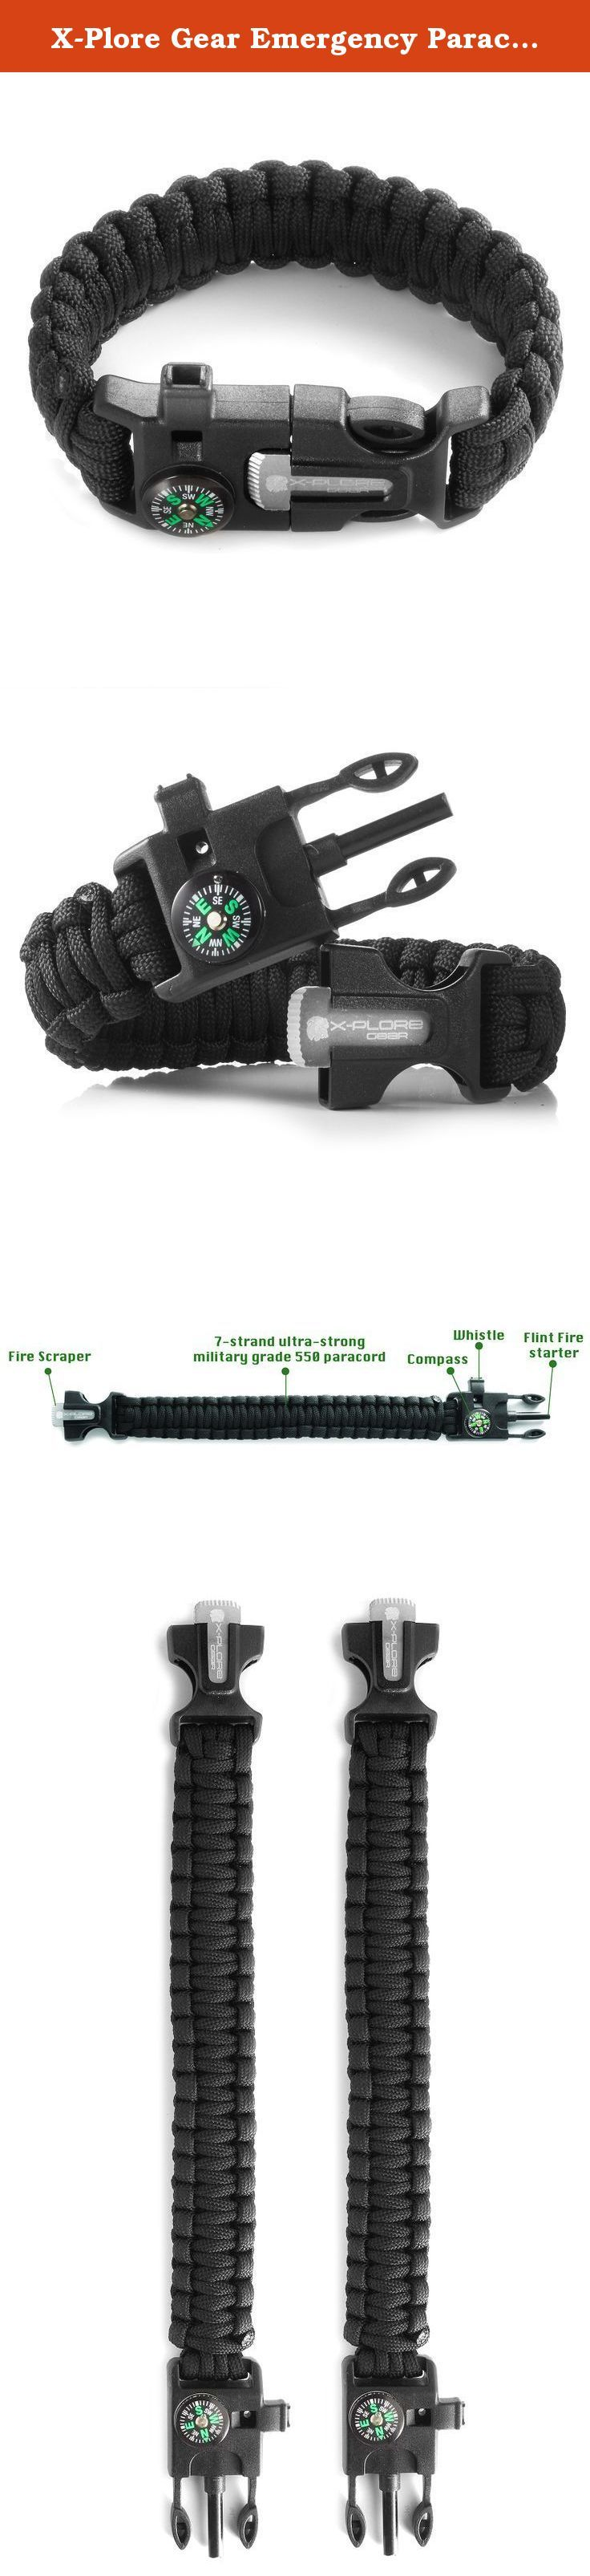 X-Plore Gear Emergency Paracord Bracelets   Set Of 2  The ULTIMATE Tactical Survival Gear  Flint Fire Starter, Whistle, Compass & Scraper/Knife  BEST Wilderness Survival-Kit -- Black(L)/Black(L). All The Survival Gear You Need, Packed In Our SA01 Paracord Bracelet! Now with X-Plore's paracord bracelet, you can enjoy having a 4 in 1 mini survival kit that can be carried around your wrist! Smart Design Our ultimate survival bracelet, is designed in a way that allows you to carry it with you...